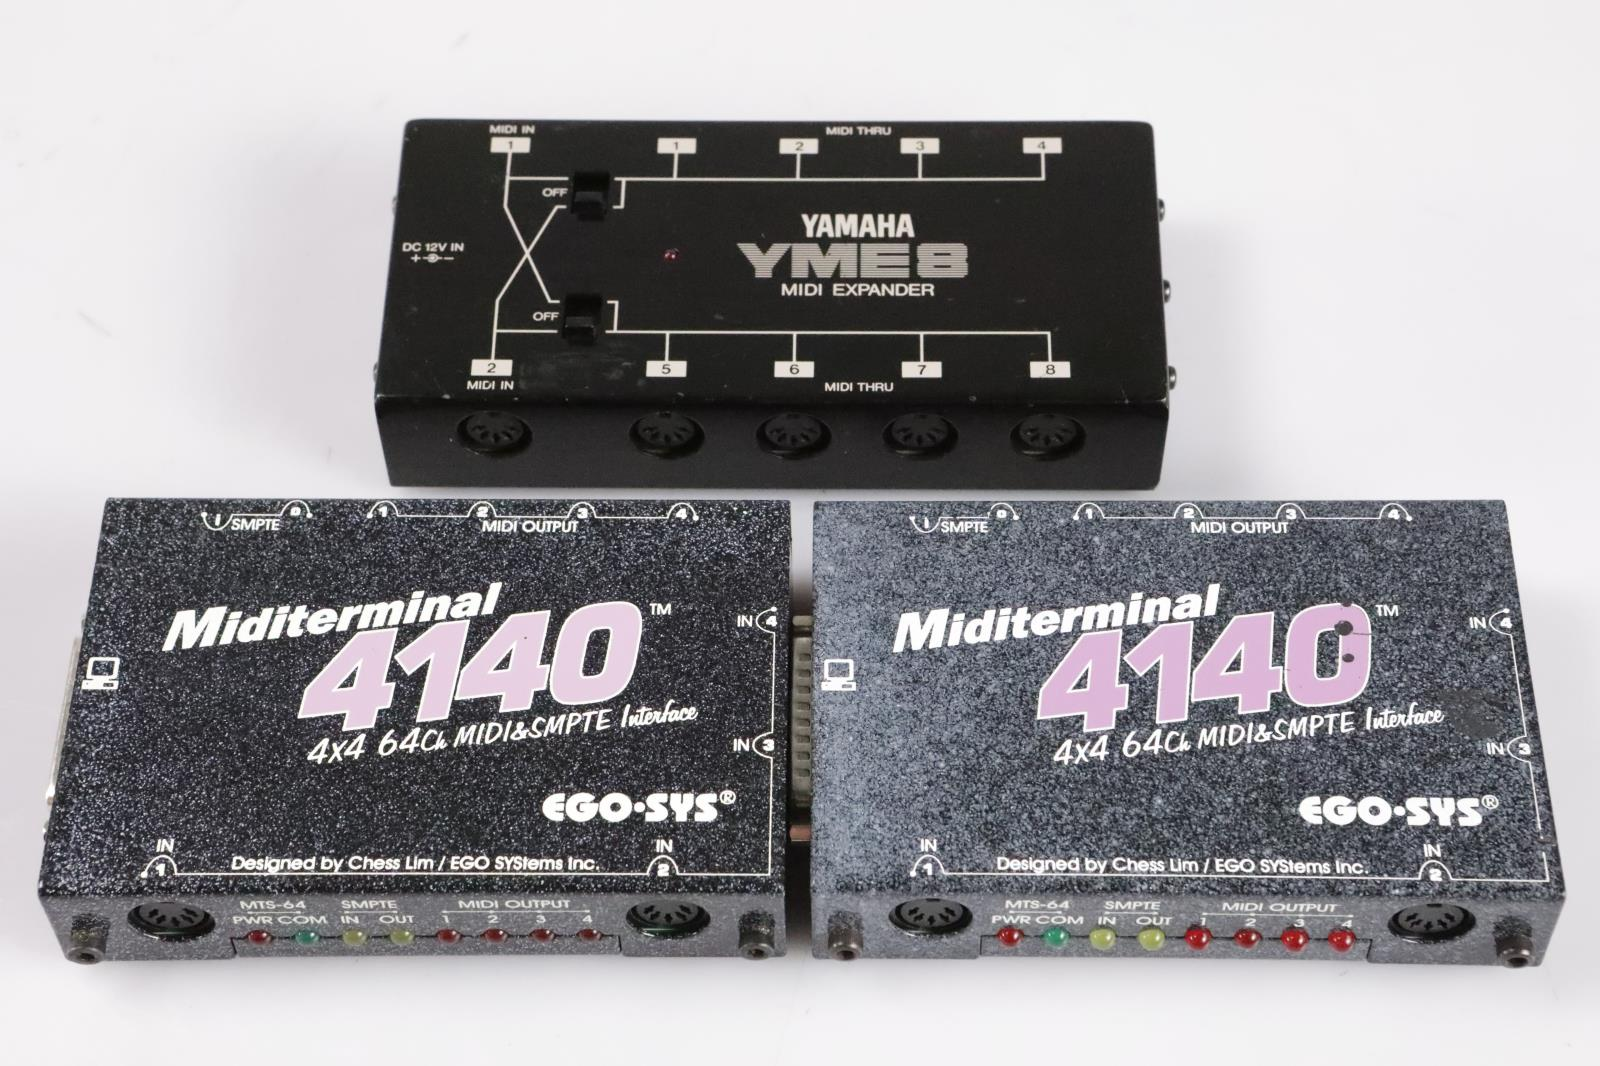 Yamaha YME8 MIDI Expander & 2 EGO-SYS Miditerminal 4140 4x4 w/ Cables #35557